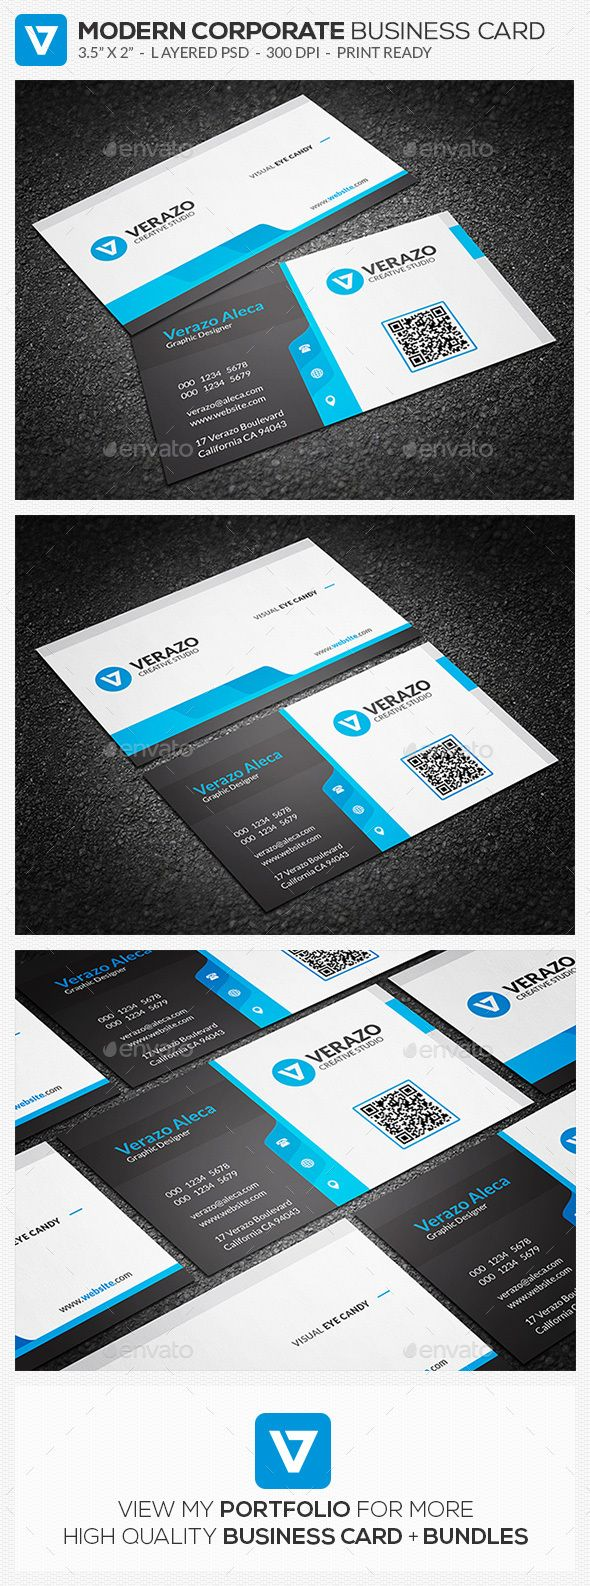 Creative Modern Corporate Business Card Template Corporate - Buy business card template